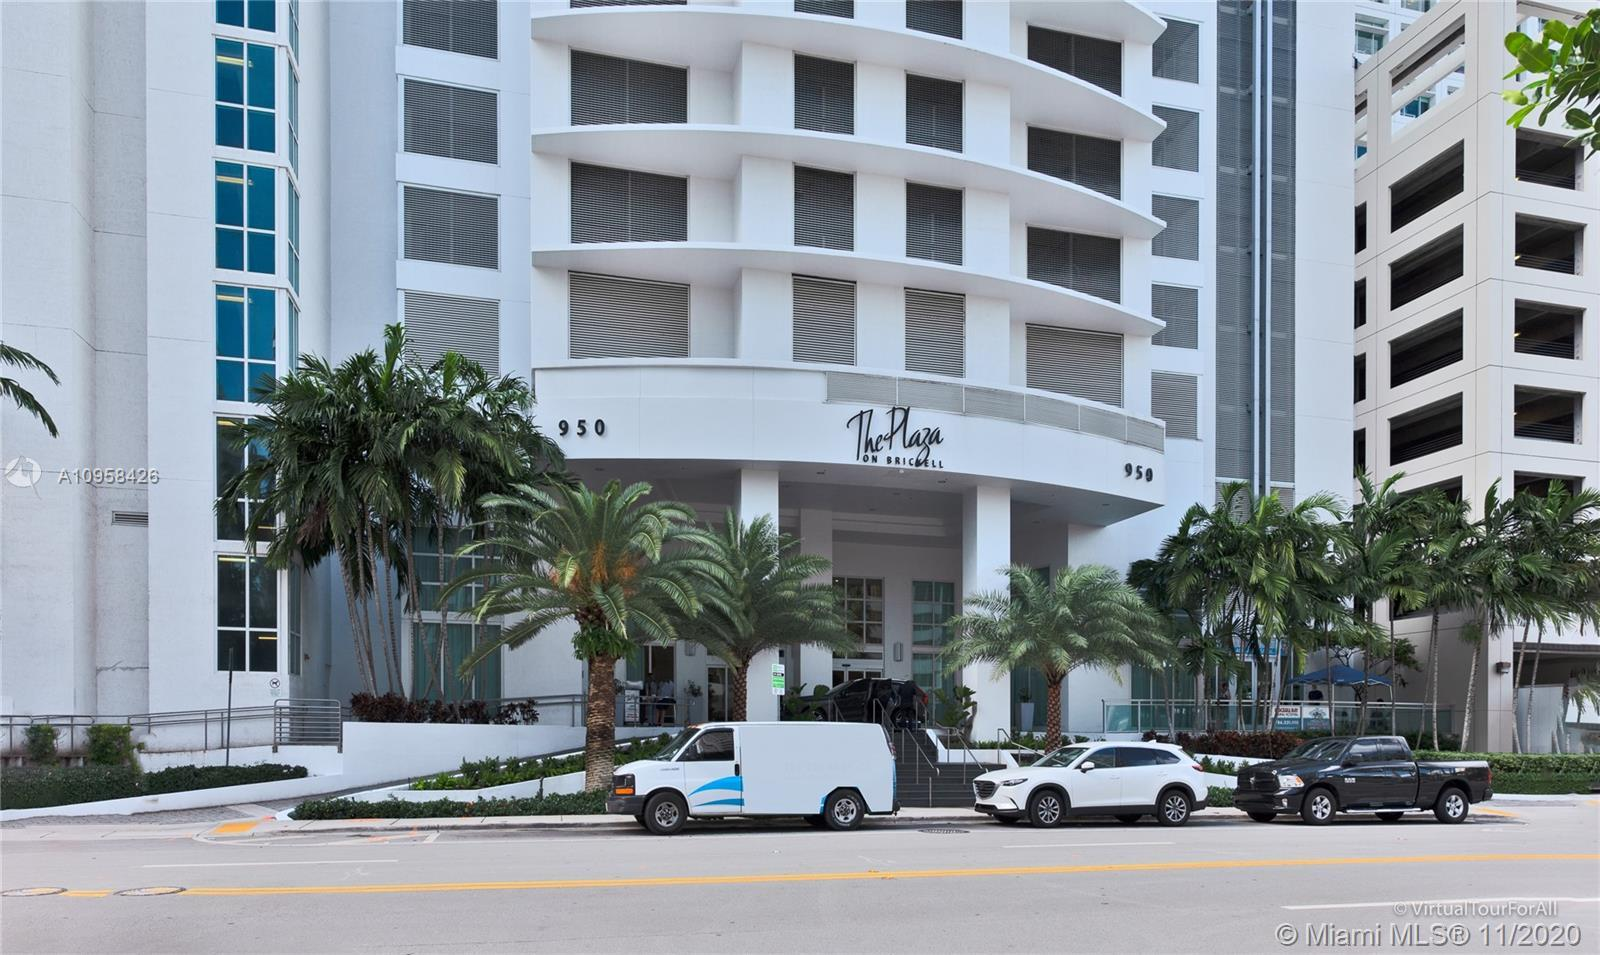 AMAZING 2BED / 2.5 BATH  BRIGHT CORNER UNIT WITH BEAUTIFULL CLEAR VIEWS ,WRAP AROUND BALCONIES, AND